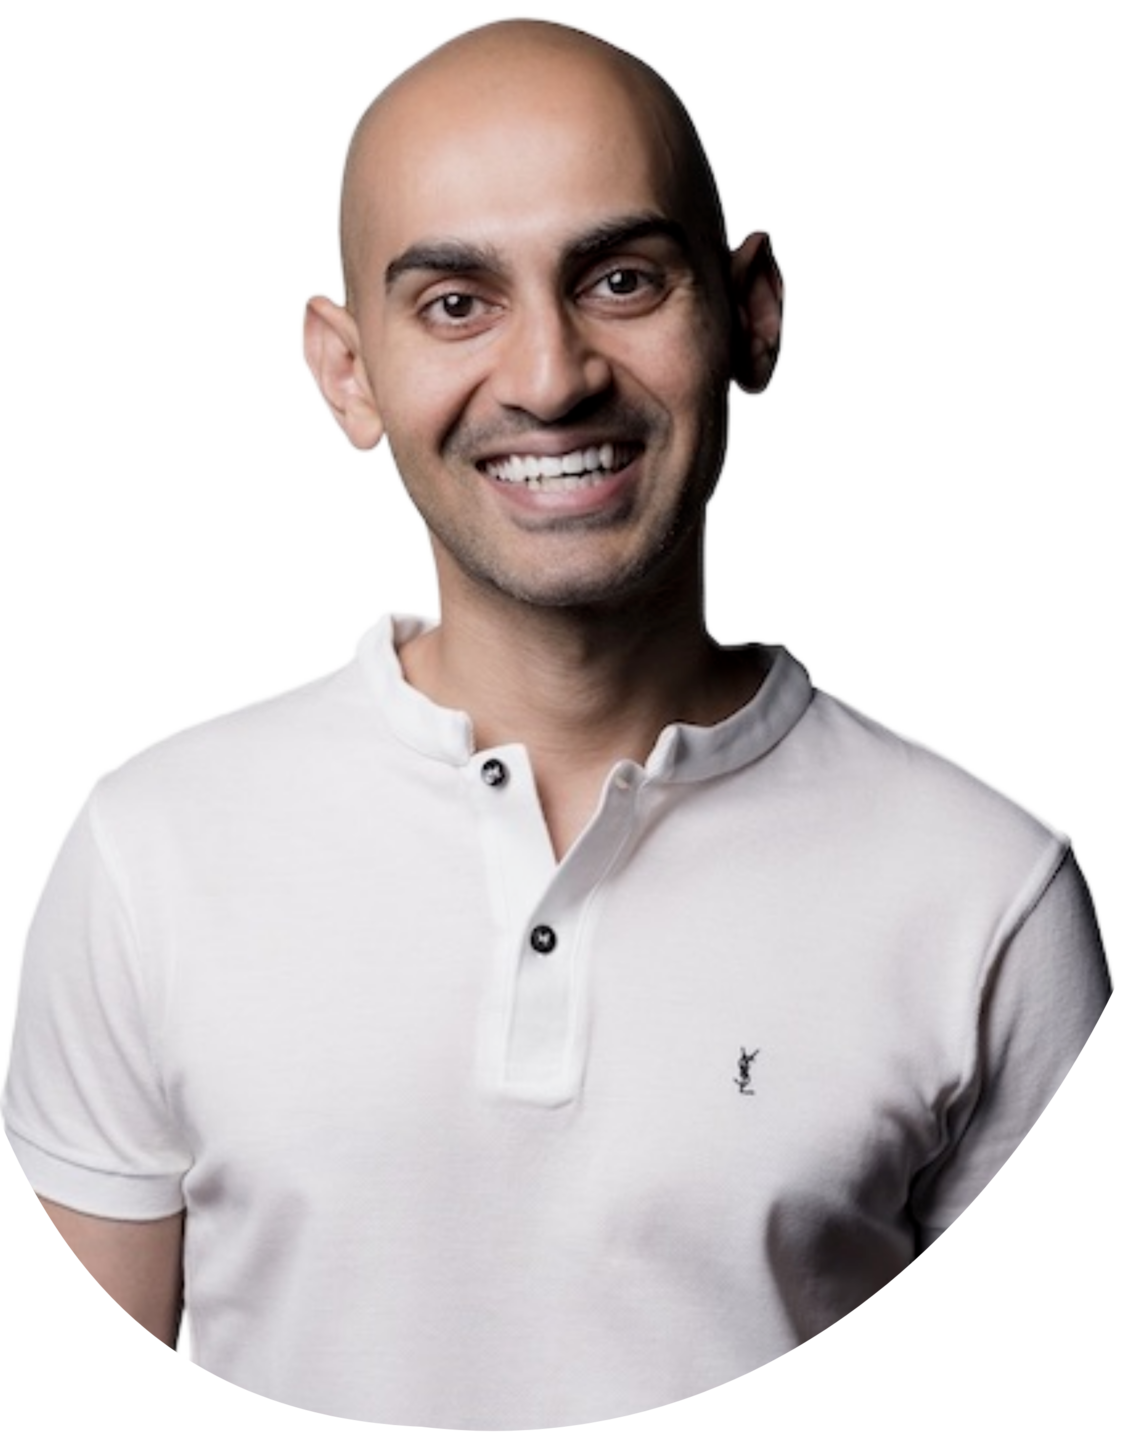 Image of Neil Patel